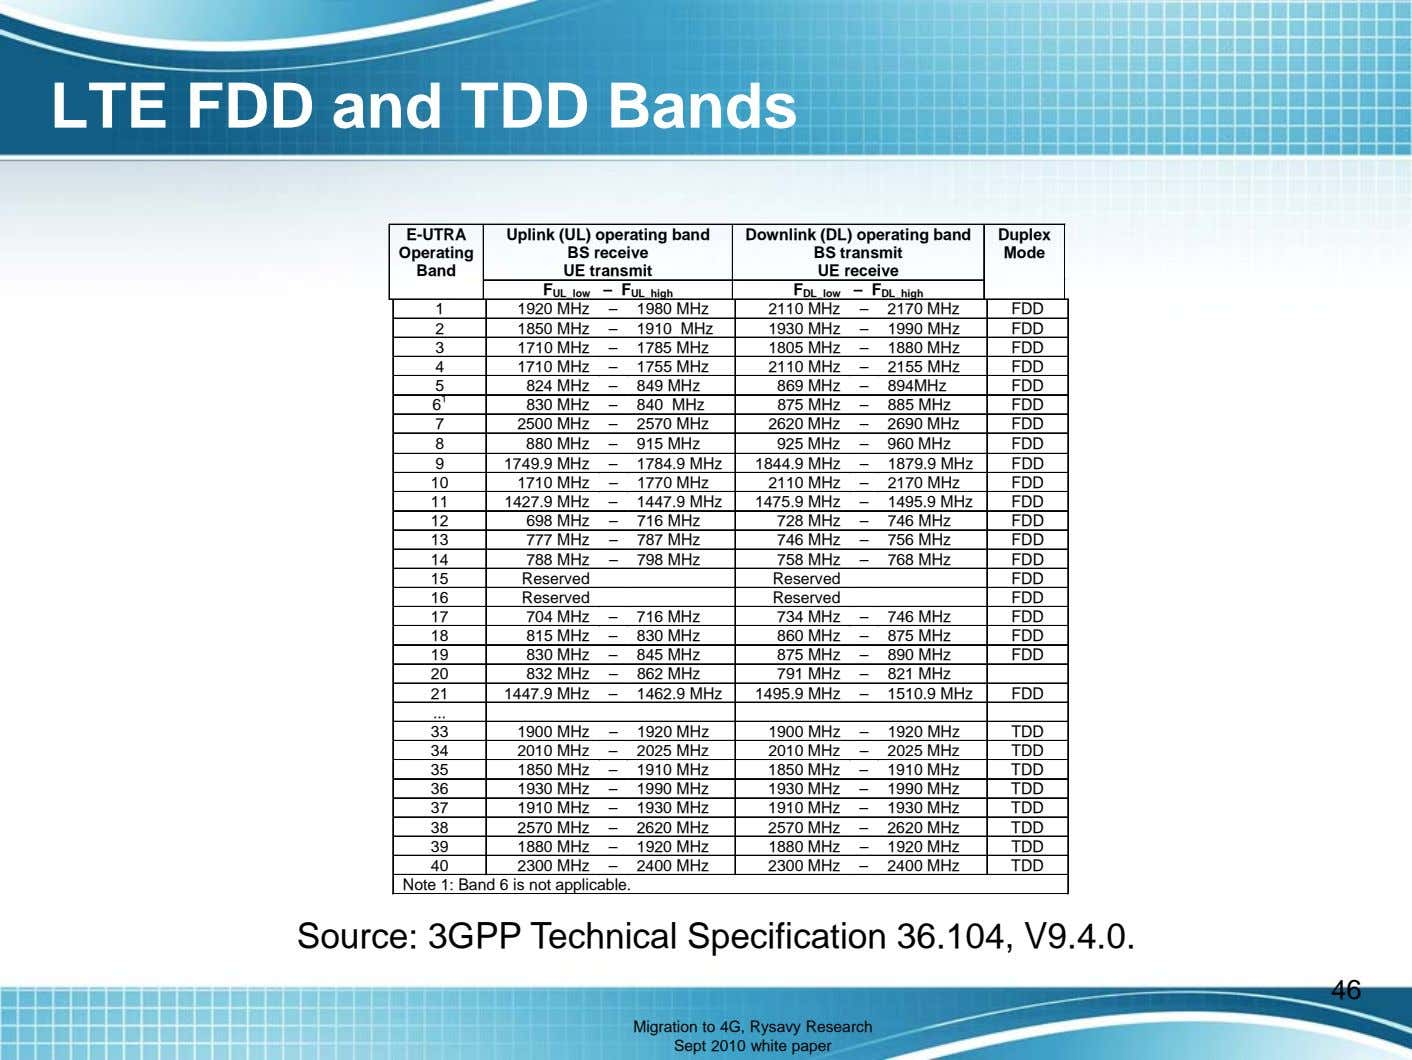 LTE FDD and TDD Bands E-UTRA Uplink (UL) operating band Downlink (DL) operating band Duplex